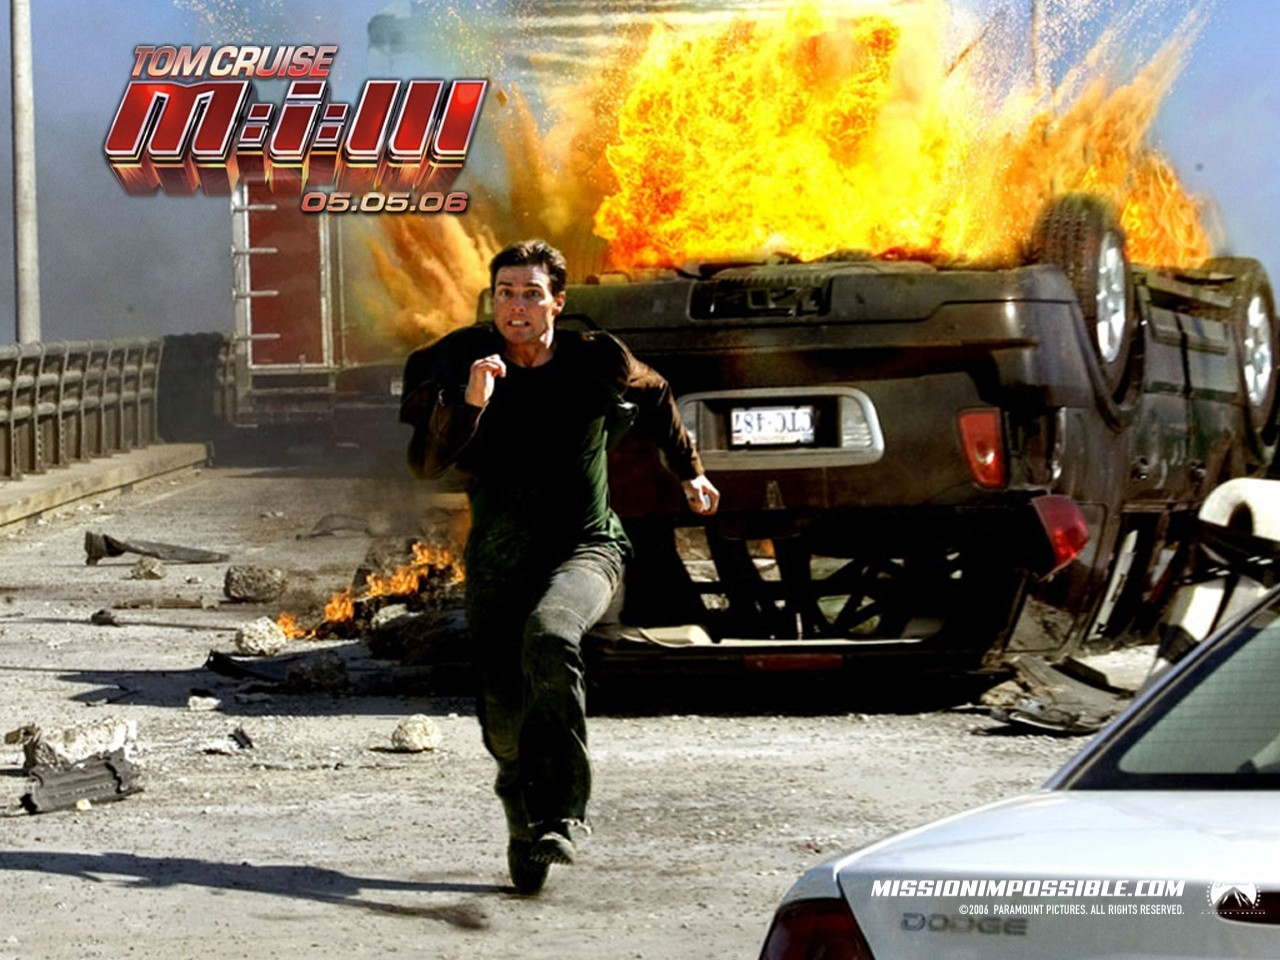 Wallpaper del film Mission: Impossible III con Tom Cruise